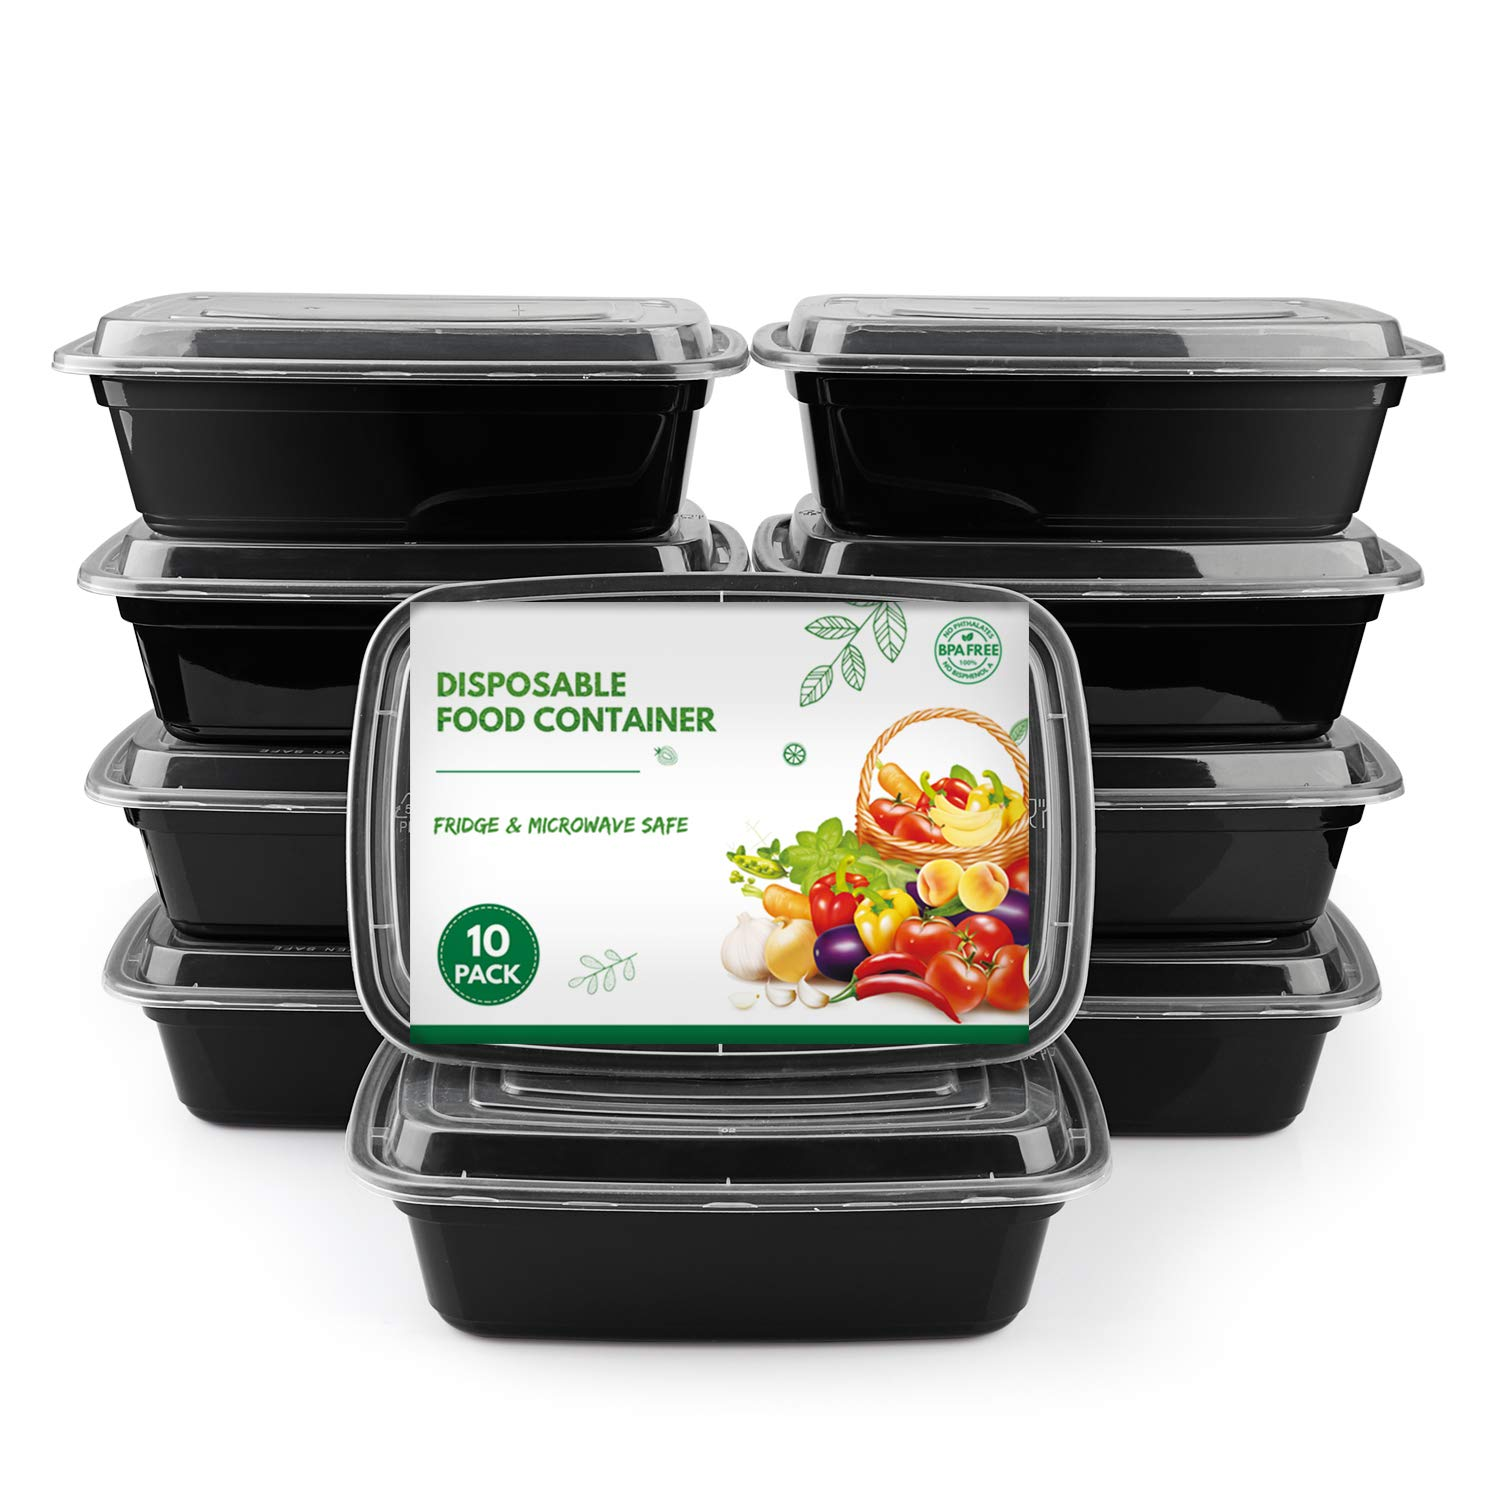 [10 Pack] Meal Prep Containers, Reusable Food Storage Containers with Lids, BPA-Free Polypropylene Food Take Out Boxes Leftover Containers, Freezer & Microwavable, 1-Compartment, 1000mL